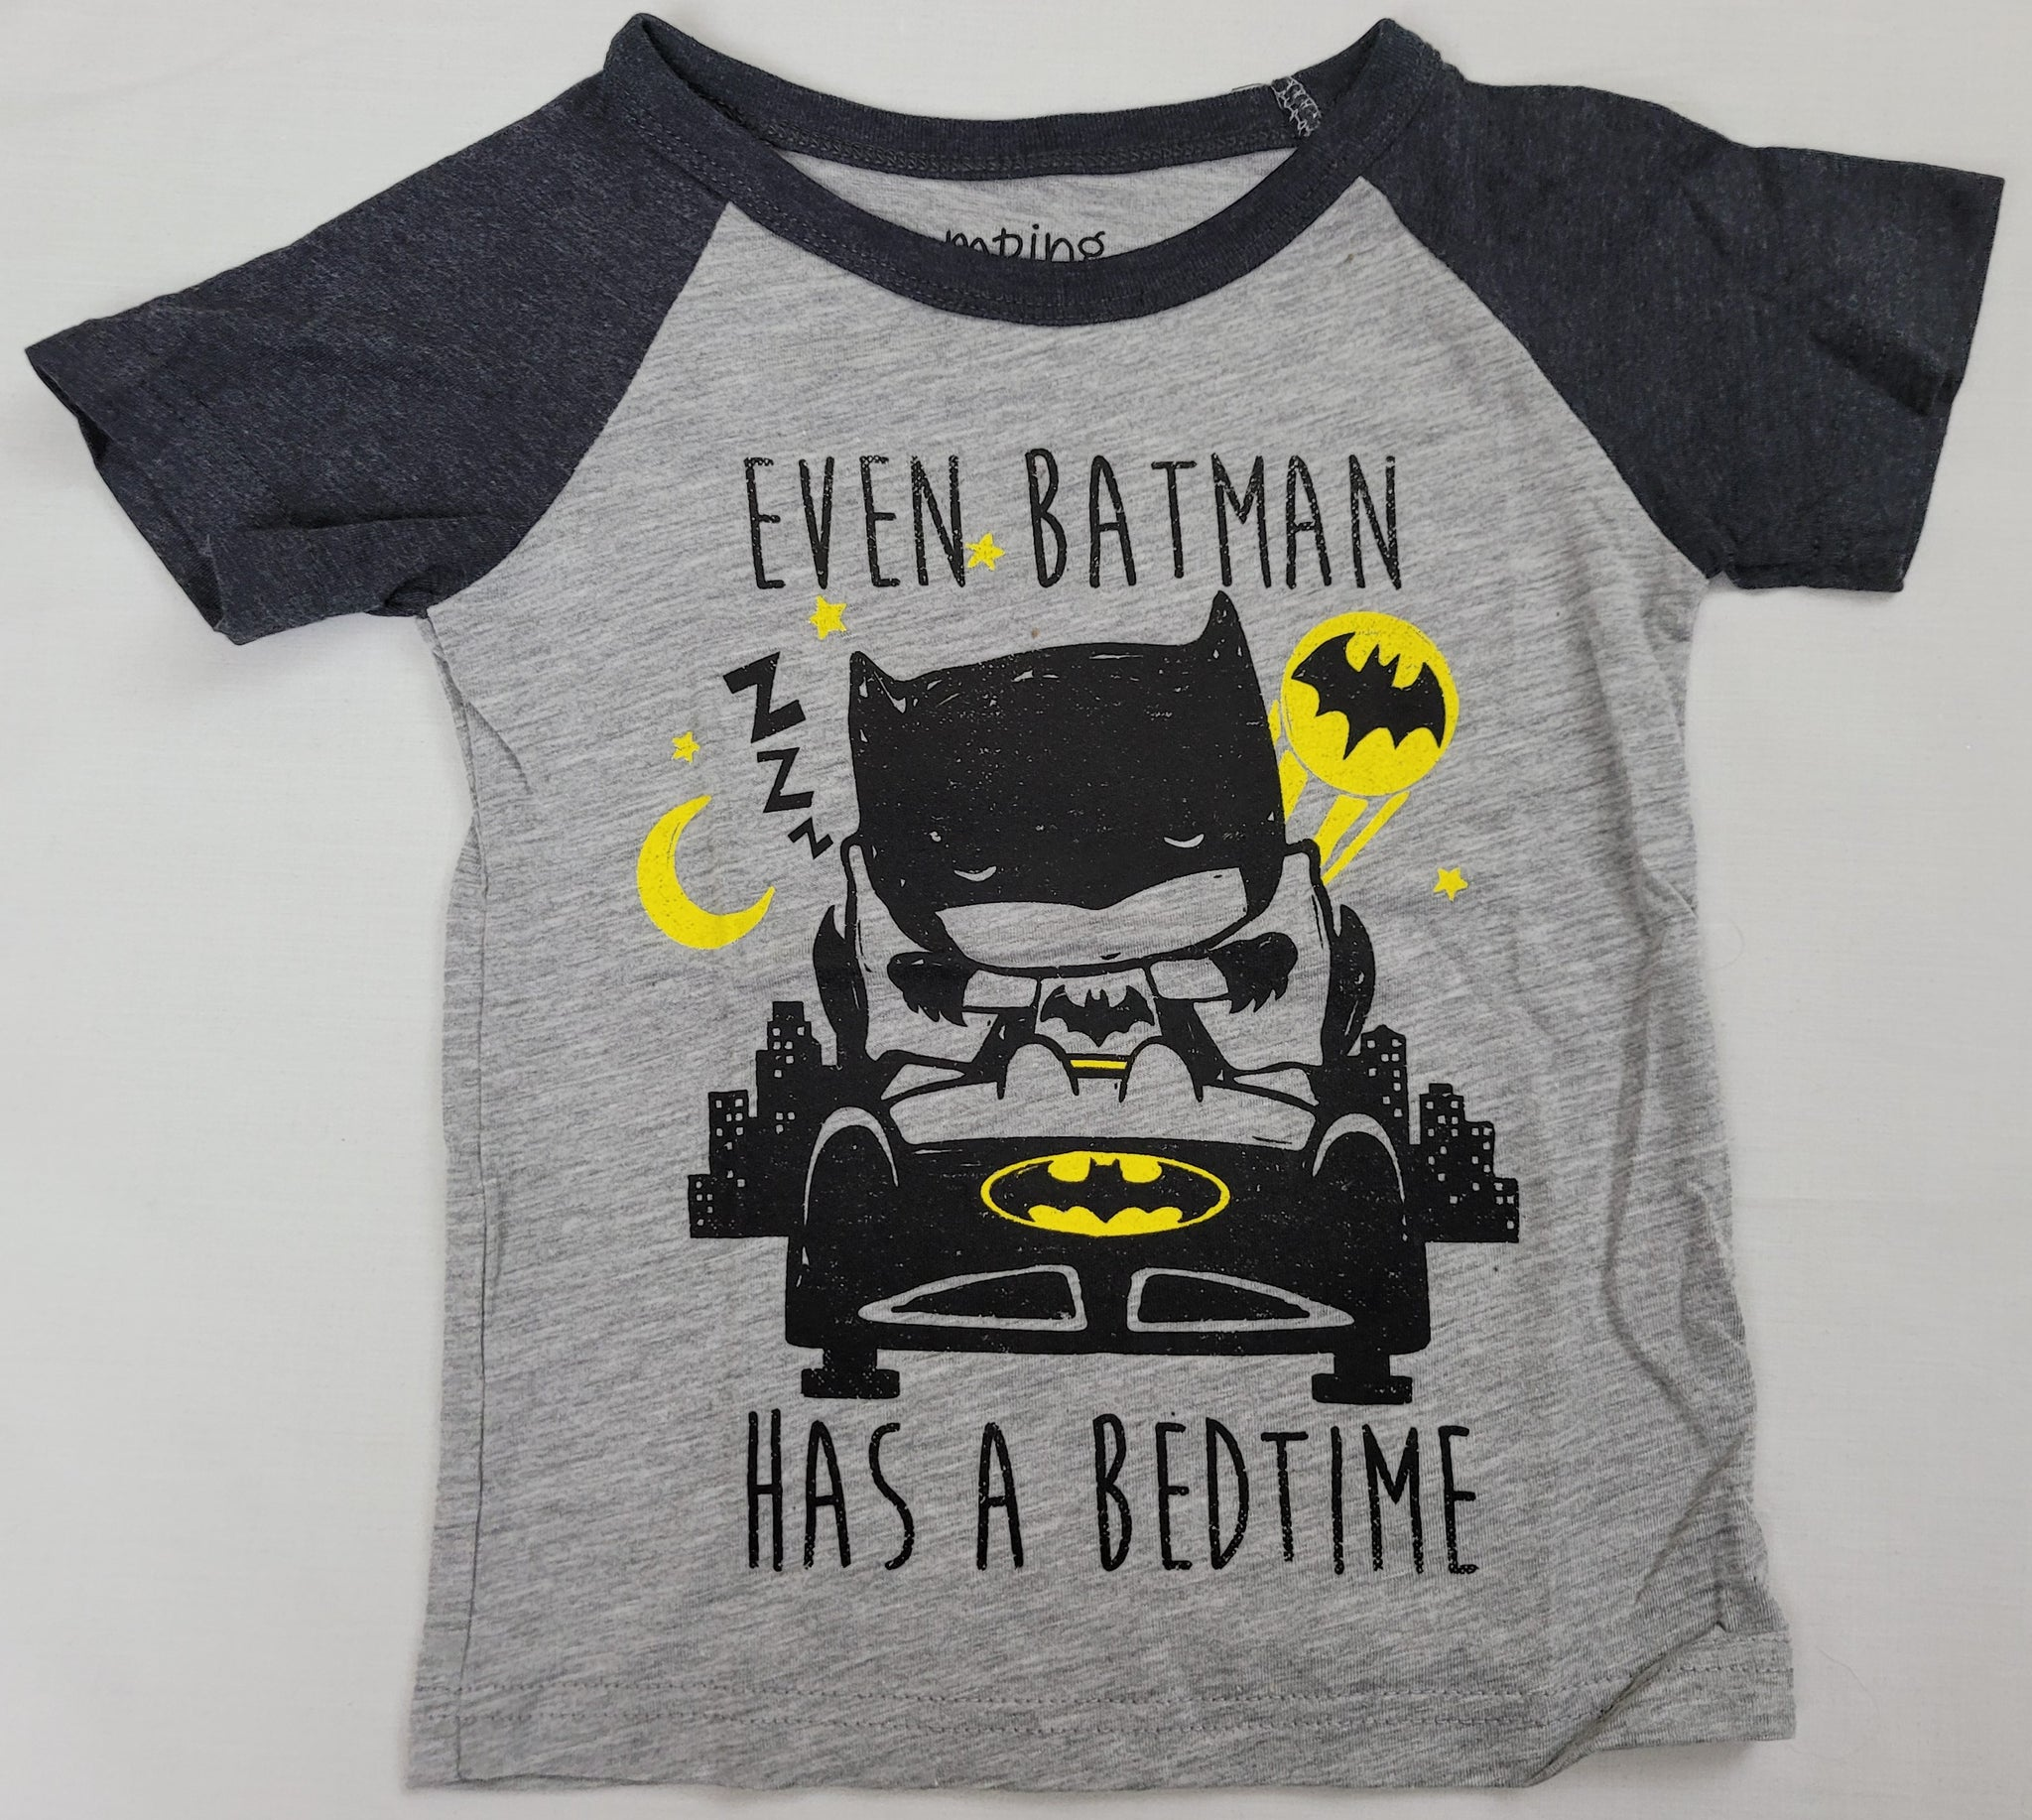 Even Batman Has A Bedtime DC Comics Boys T-Shirt 2T 3T 4T 5T